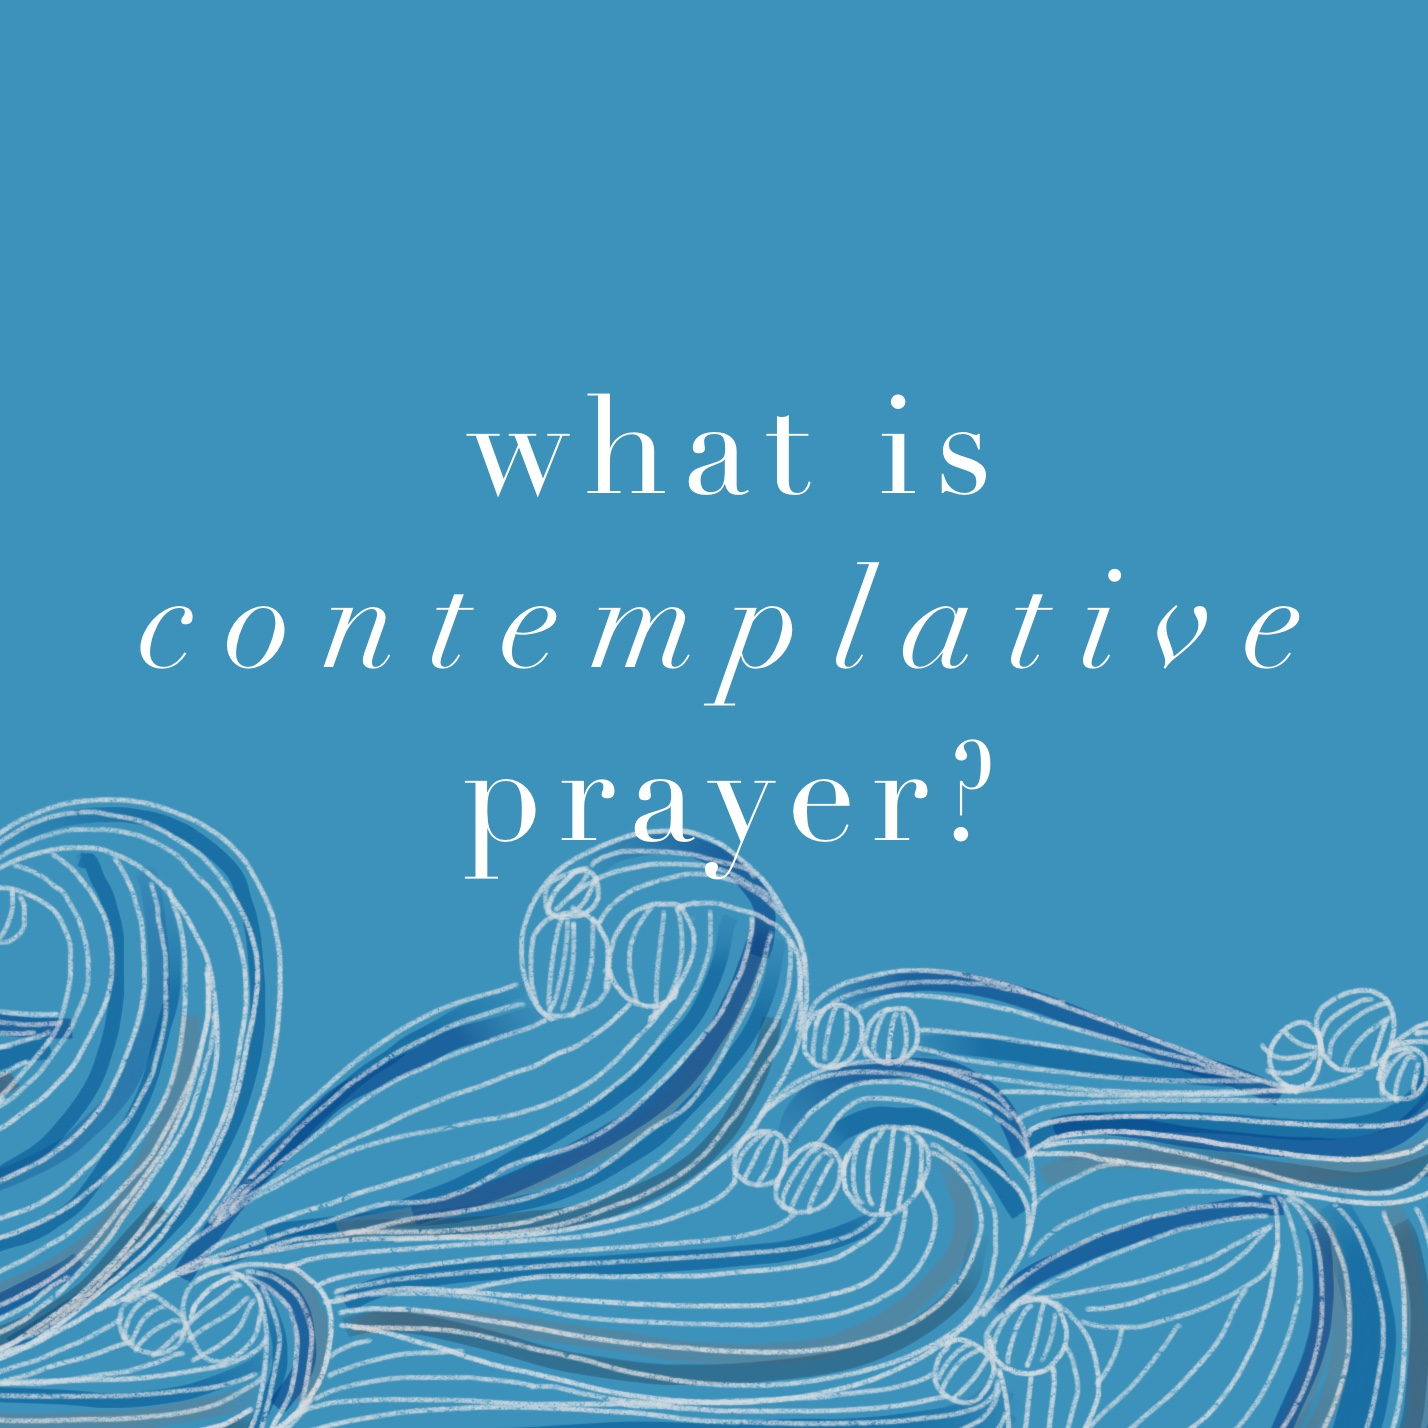 What is contemplative prayer? 8/11